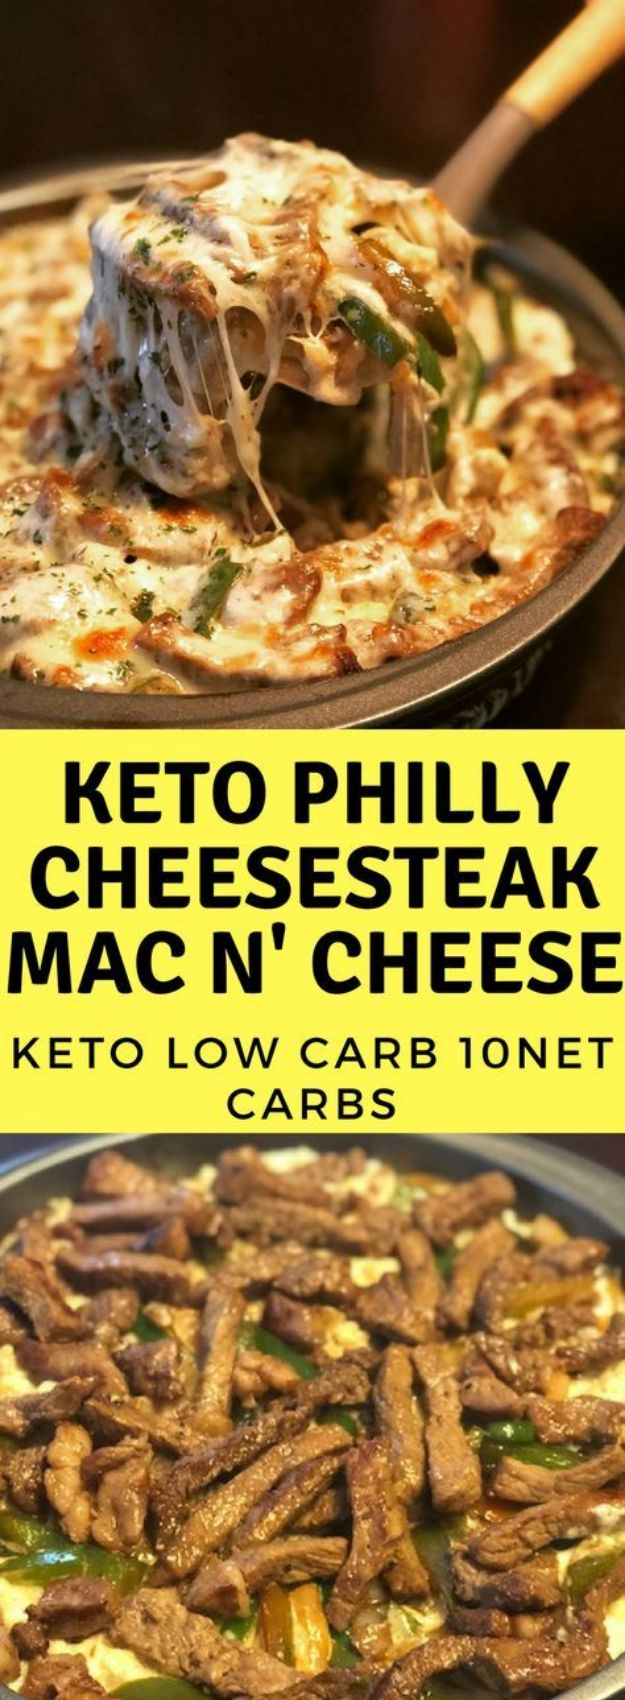 Mac and Cheese Recipes | Keto Philly Cheesesteak Mac n' Cheese - Easy Recipe Ideas for Macaroni and Cheese - Quick Side Dishes